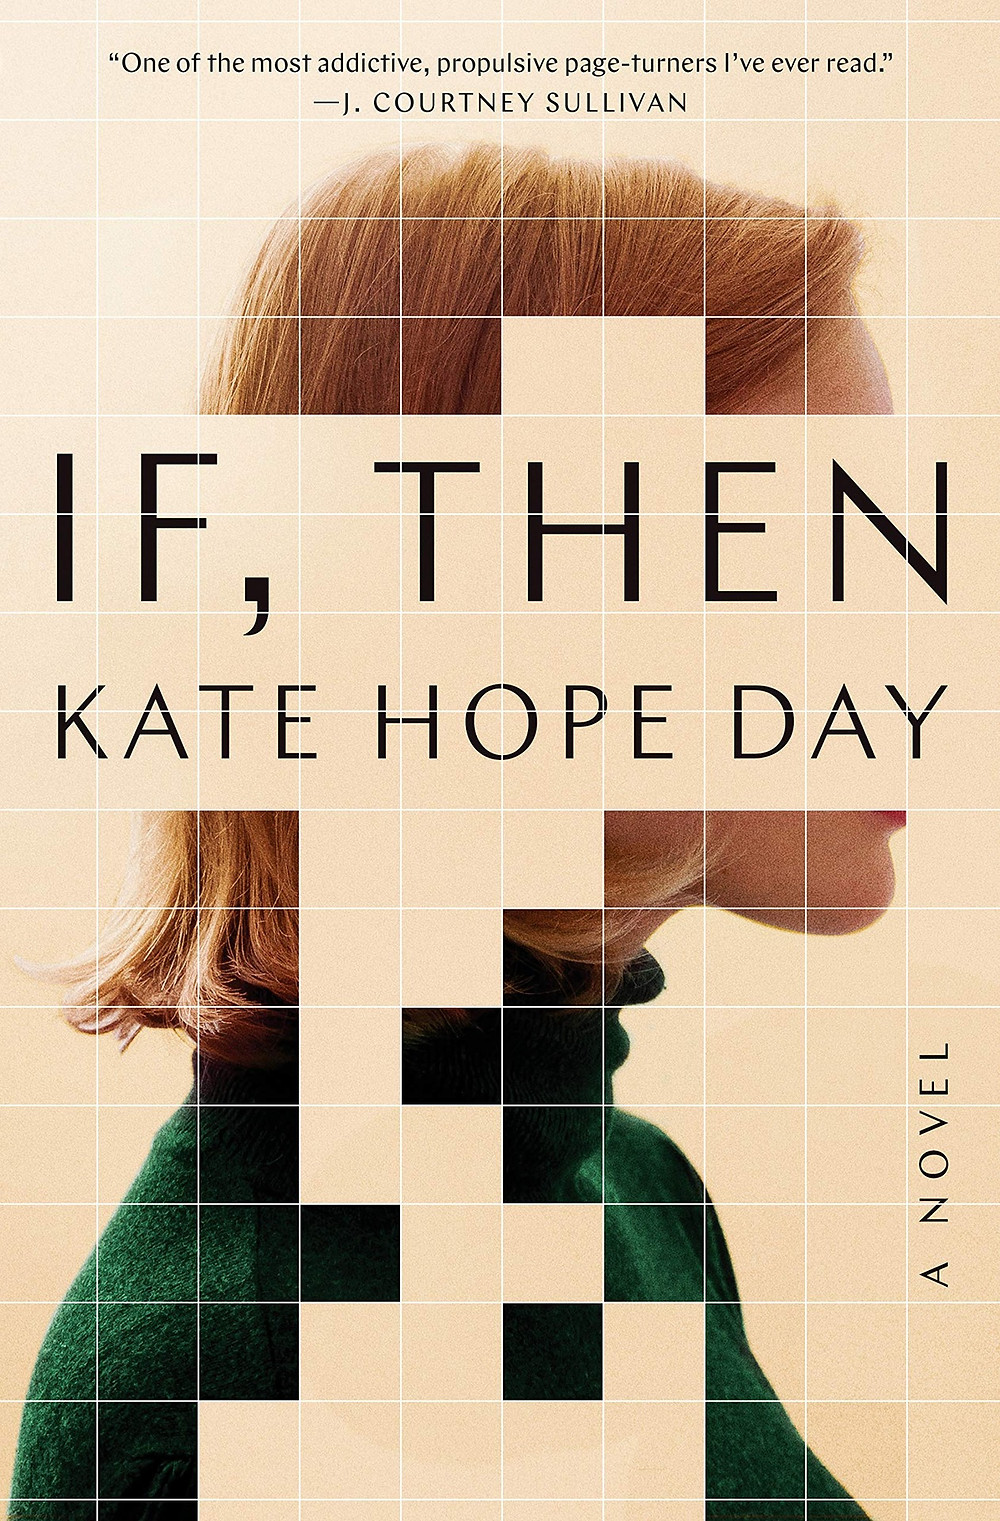 "If, Then by Kate Hope Day the book slut ""A must-read--a gorgeous literary novel that asks us to imagine all the possible versions of ourselves that might exist.""--J. Courtney Sullivan, New York Times bestselling author of Saints for All Occasions The residents of a sleepy mountain town are rocked by troubling visions of an alternate reality in this dazzling debut that combines the family-driven suspense of Celeste Ng's Little Fires Everywhere with the inventive storytelling of The Immortalists. In the quiet haven of Clearing, Oregon, four neighbors find their lives upended when they begin to see themselves in parallel realities. Ginny, a devoted surgeon whose work often takes precedence over her family, has a baffling vision of a beautiful co-worker in Ginny's own bed and begins to doubt the solidity of her marriage. Ginny's husband, Mark, a wildlife scientist, sees a vision that suggests impending devastation and grows increasingly paranoid, threatening the safety of his wife and son. Samara, a young woman desperately mourning the recent death of her mother and questioning why her father seems to be coping with such ease, witnesses an apparition of her mother healthy and vibrant and wonders about the secrets her parents may have kept from her. Cass, a brilliant scholar struggling with the demands of new motherhood, catches a glimpse of herself pregnant again, just as she's on the brink of returning to the project that could define her career. At first the visions are relatively benign, but they grow increasingly disturbing--and, in some cases, frightening. When a natural disaster threatens Clearing, it becomes obvious that the visions were not what they first seemed and that the town will never be the same. Startling, deeply imagined, and compulsively readable, Kate Hope Day's debut novel is about the choices we make that shape our lives and determine our destinies--the moments that alter us so profoundly that it feels as if we've entered another reality. Praise for If, Then ""Hope Day has a lot of sly, stealthy fun with time-bending and parallel universes, but she also has serious things to say on urban paranoia, climate change and the atomized nature of modern life.""--Daily Mail ""If, Then has the narrative propulsion of a television show . . . [It's] a whirlwind of a story.""--Chicago Review of Books ""Effortlessly meshing the dreamlike and the realistic, [Kate Hope] Day's well-crafted mix of literary and speculative fiction is an enthralling meditation on the interconnectedness of all things.""--Publishers Weekly (starred review) Product Details Price: $16.00  $14.72 Publisher: Random House Trade Published Date: February 04, 2020 Pages: 288 Dimensions: 5.2 X 0.7 X 8.0 inches 